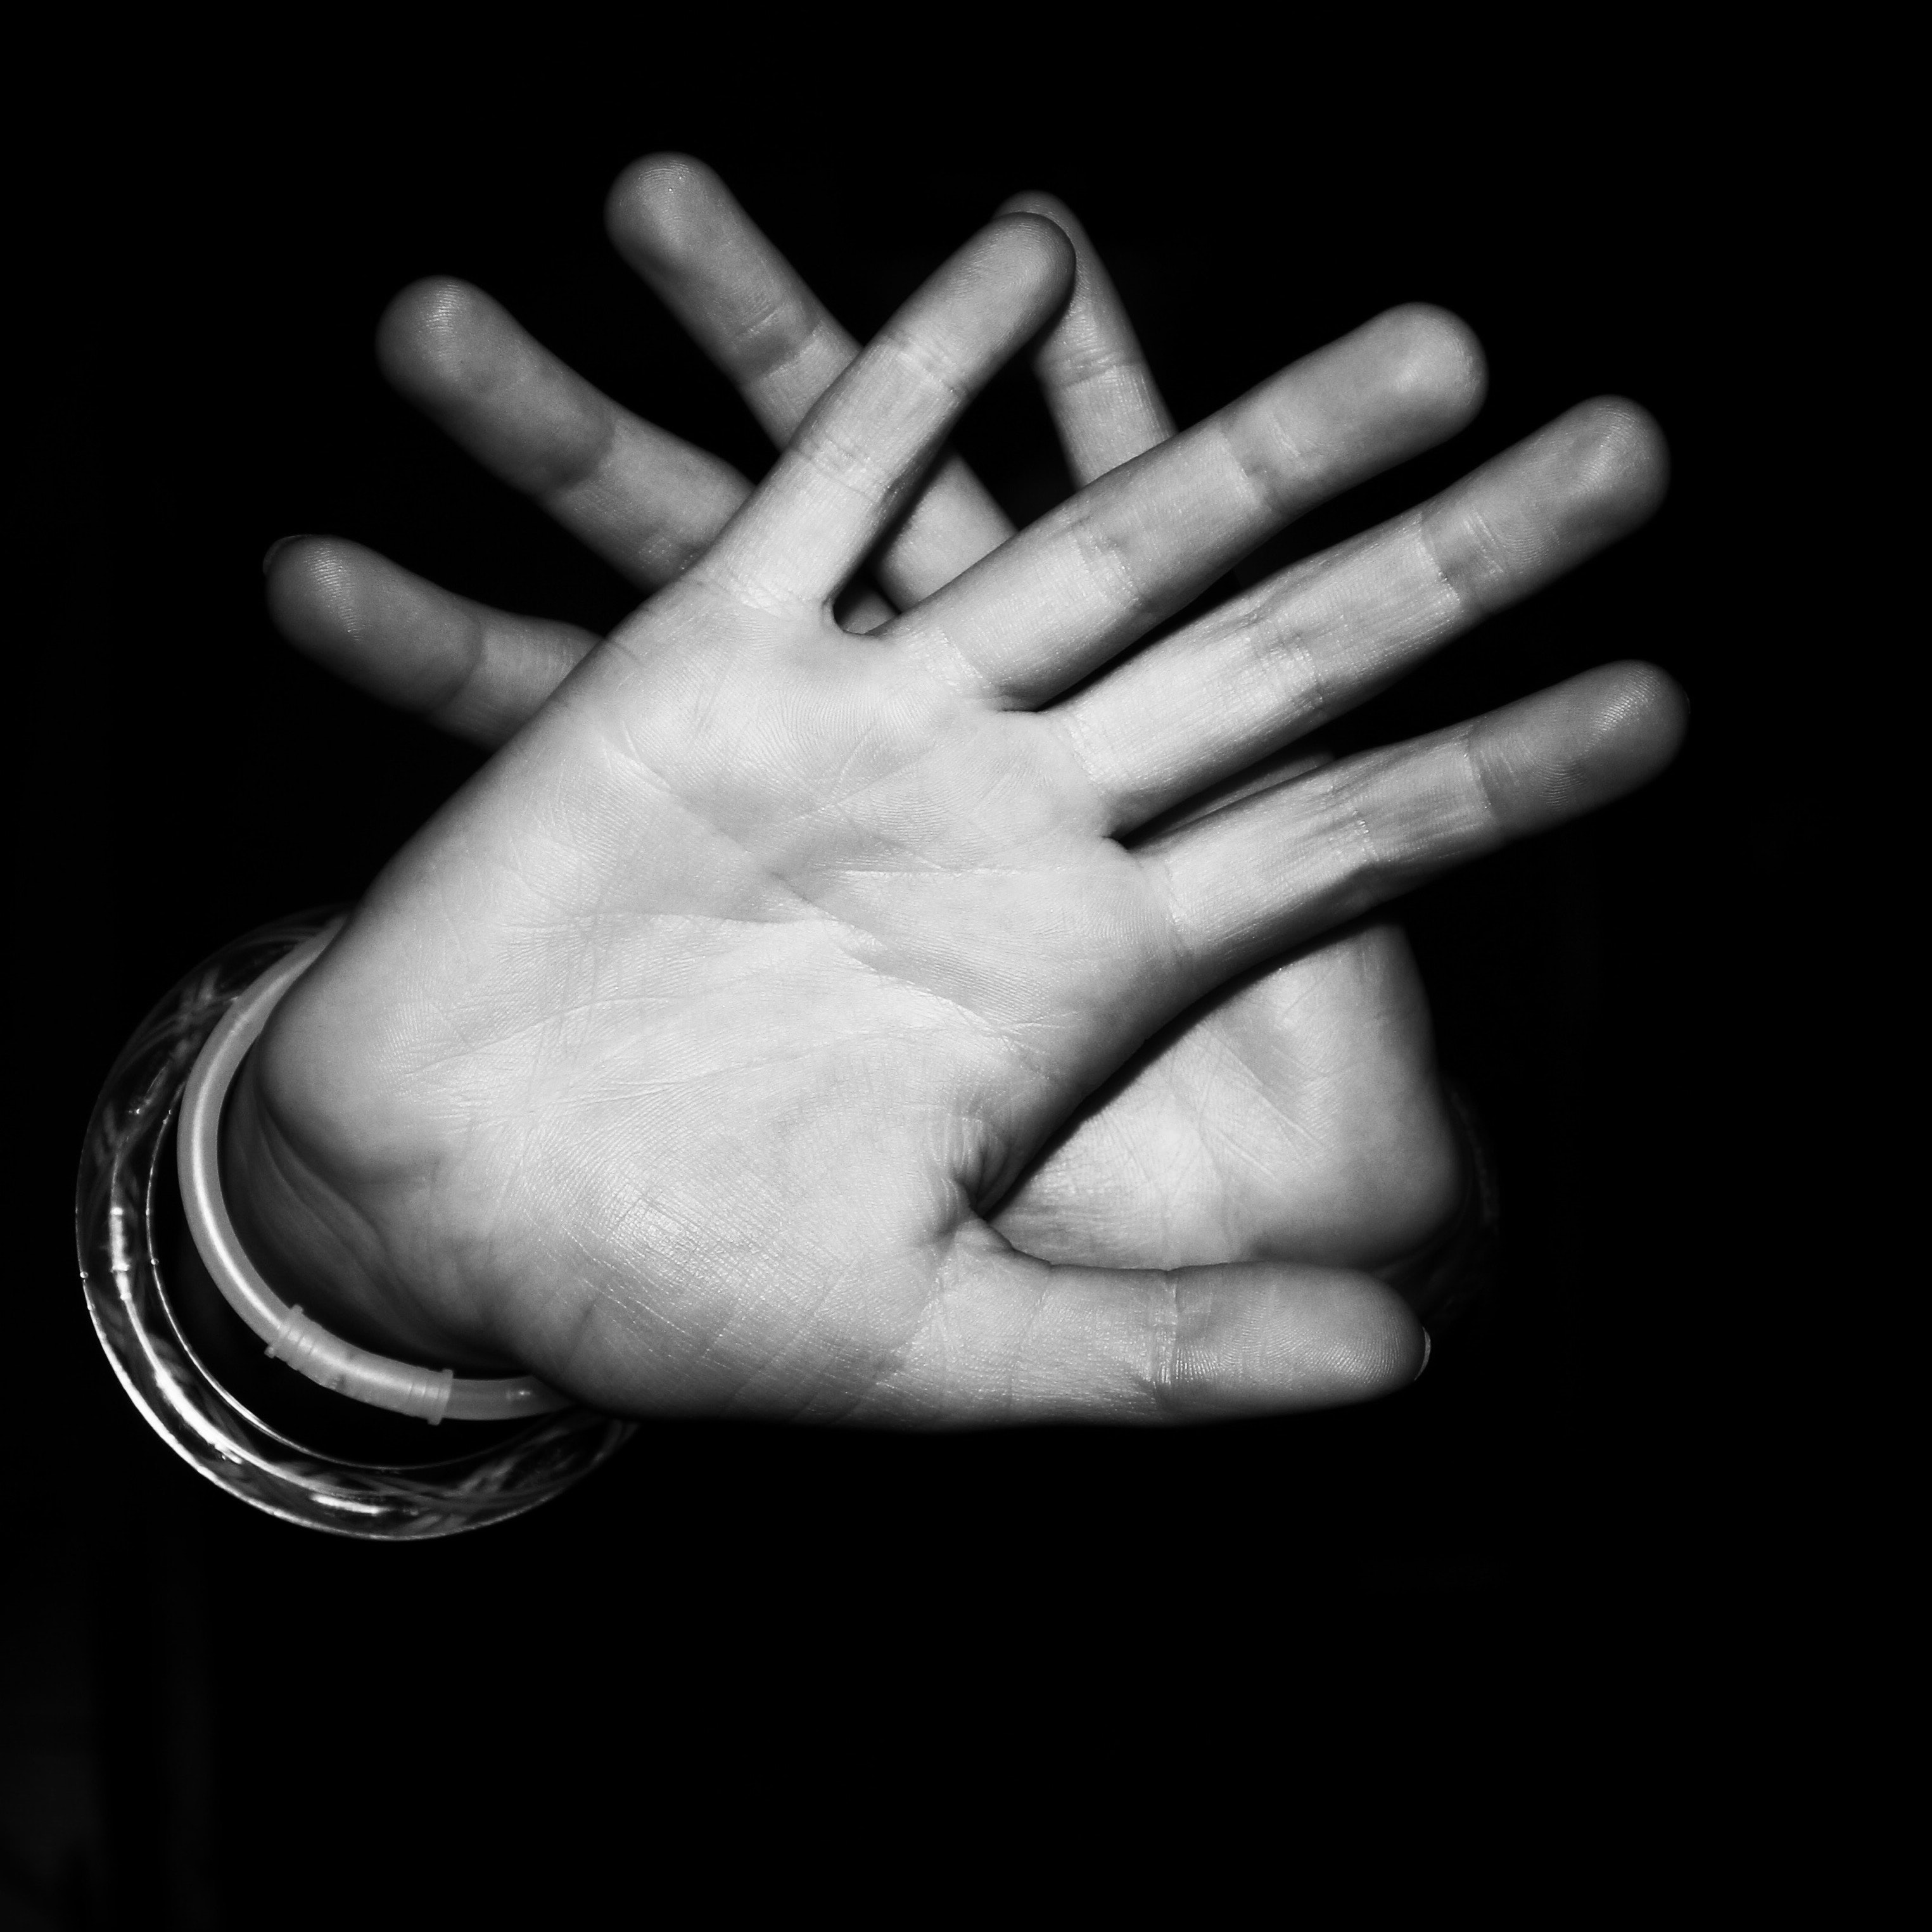 Black And White Photography Of Hands